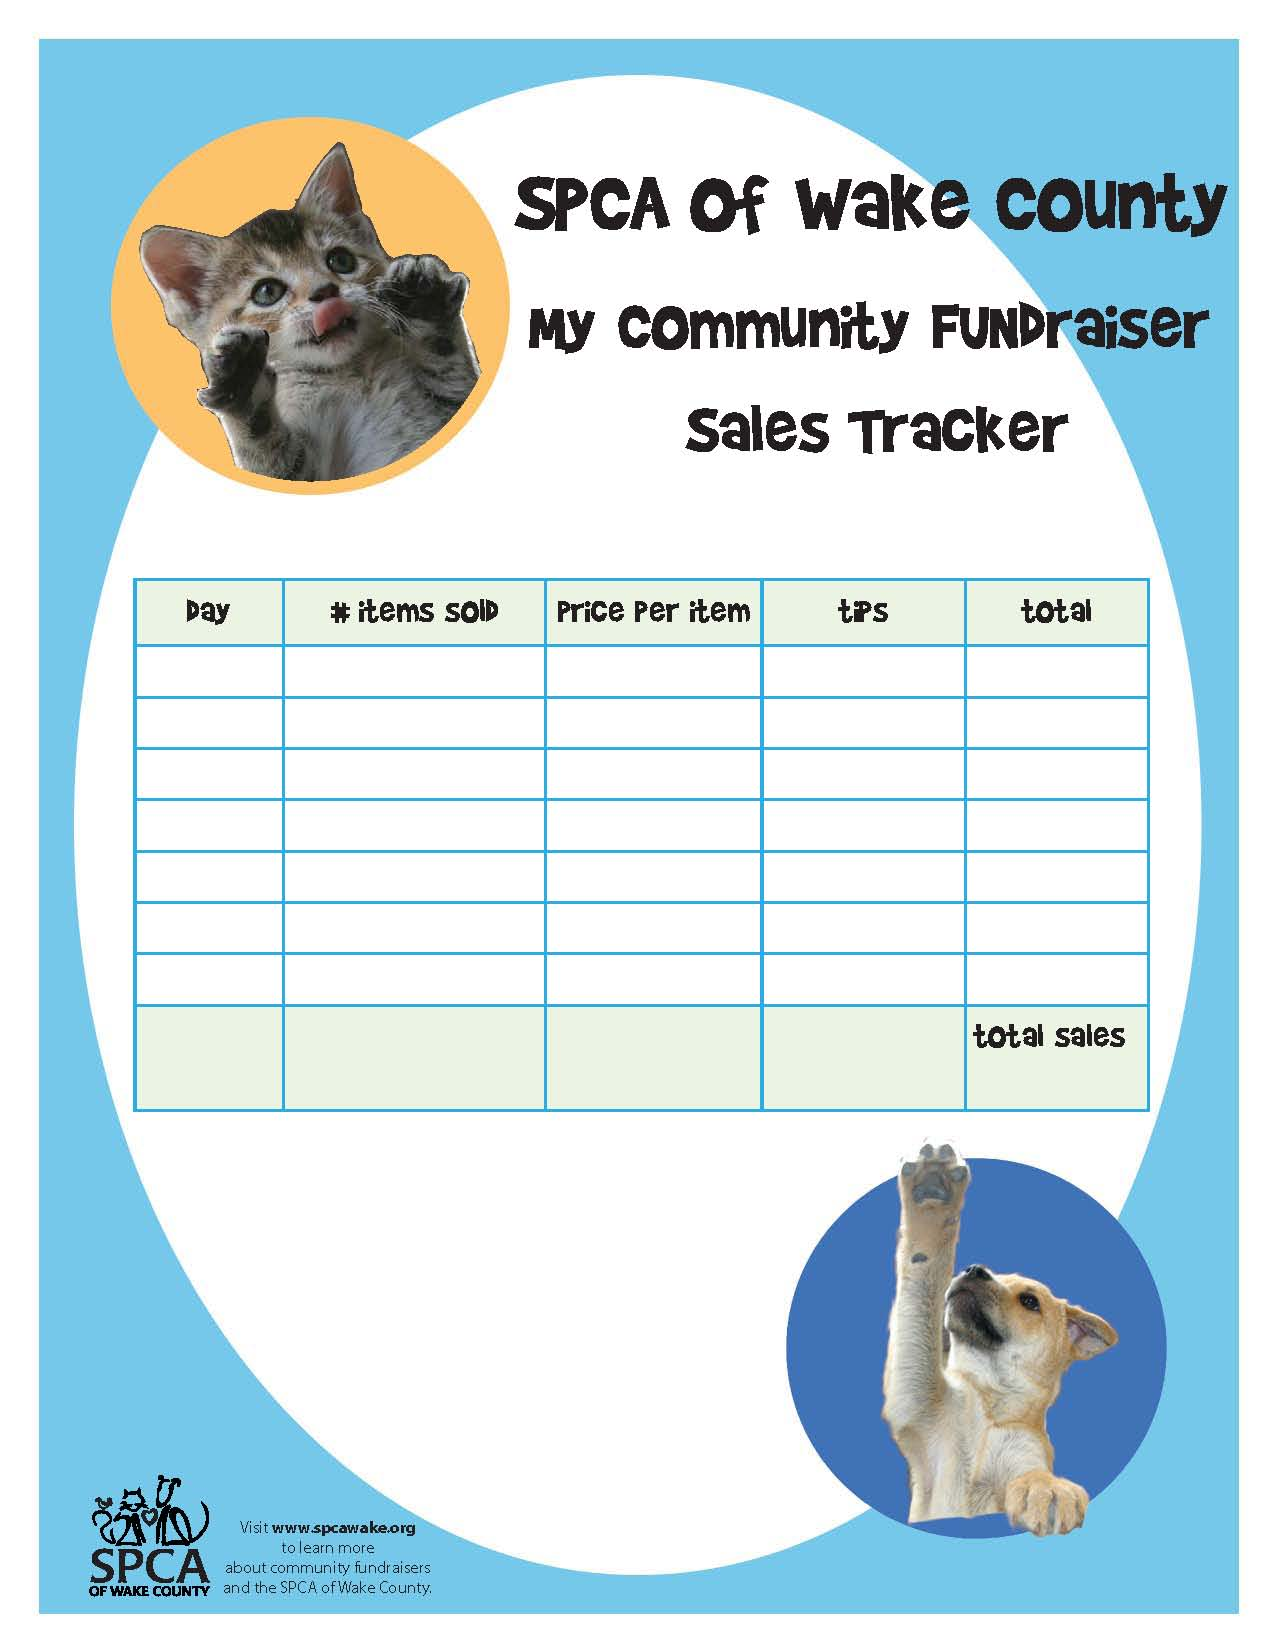 FUNdraising Guide Tool Kit - SPCA of Wake County